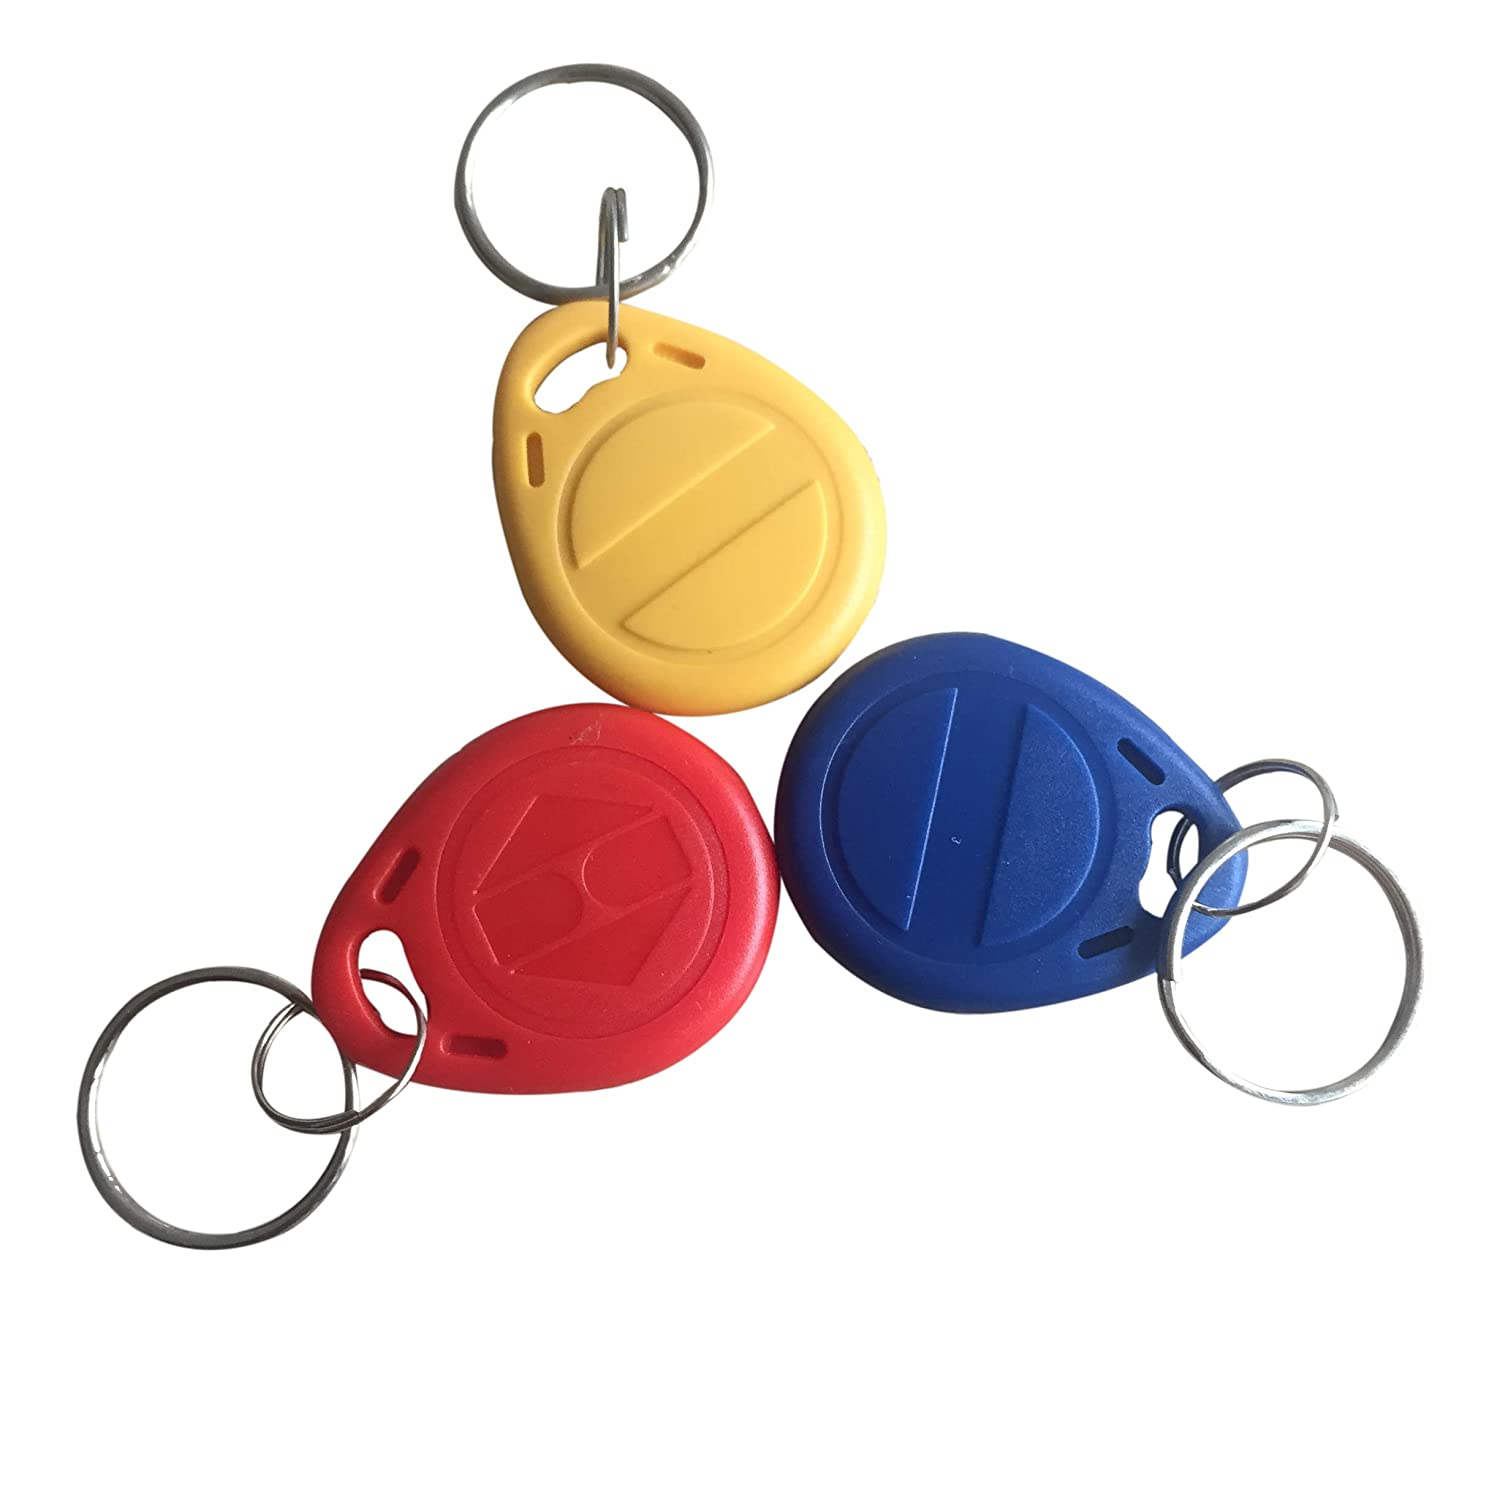 YARONGTECH-125khz rewritable T5577 RFID keyfobs/tag for Hotel key-10pcs (Mix Color)